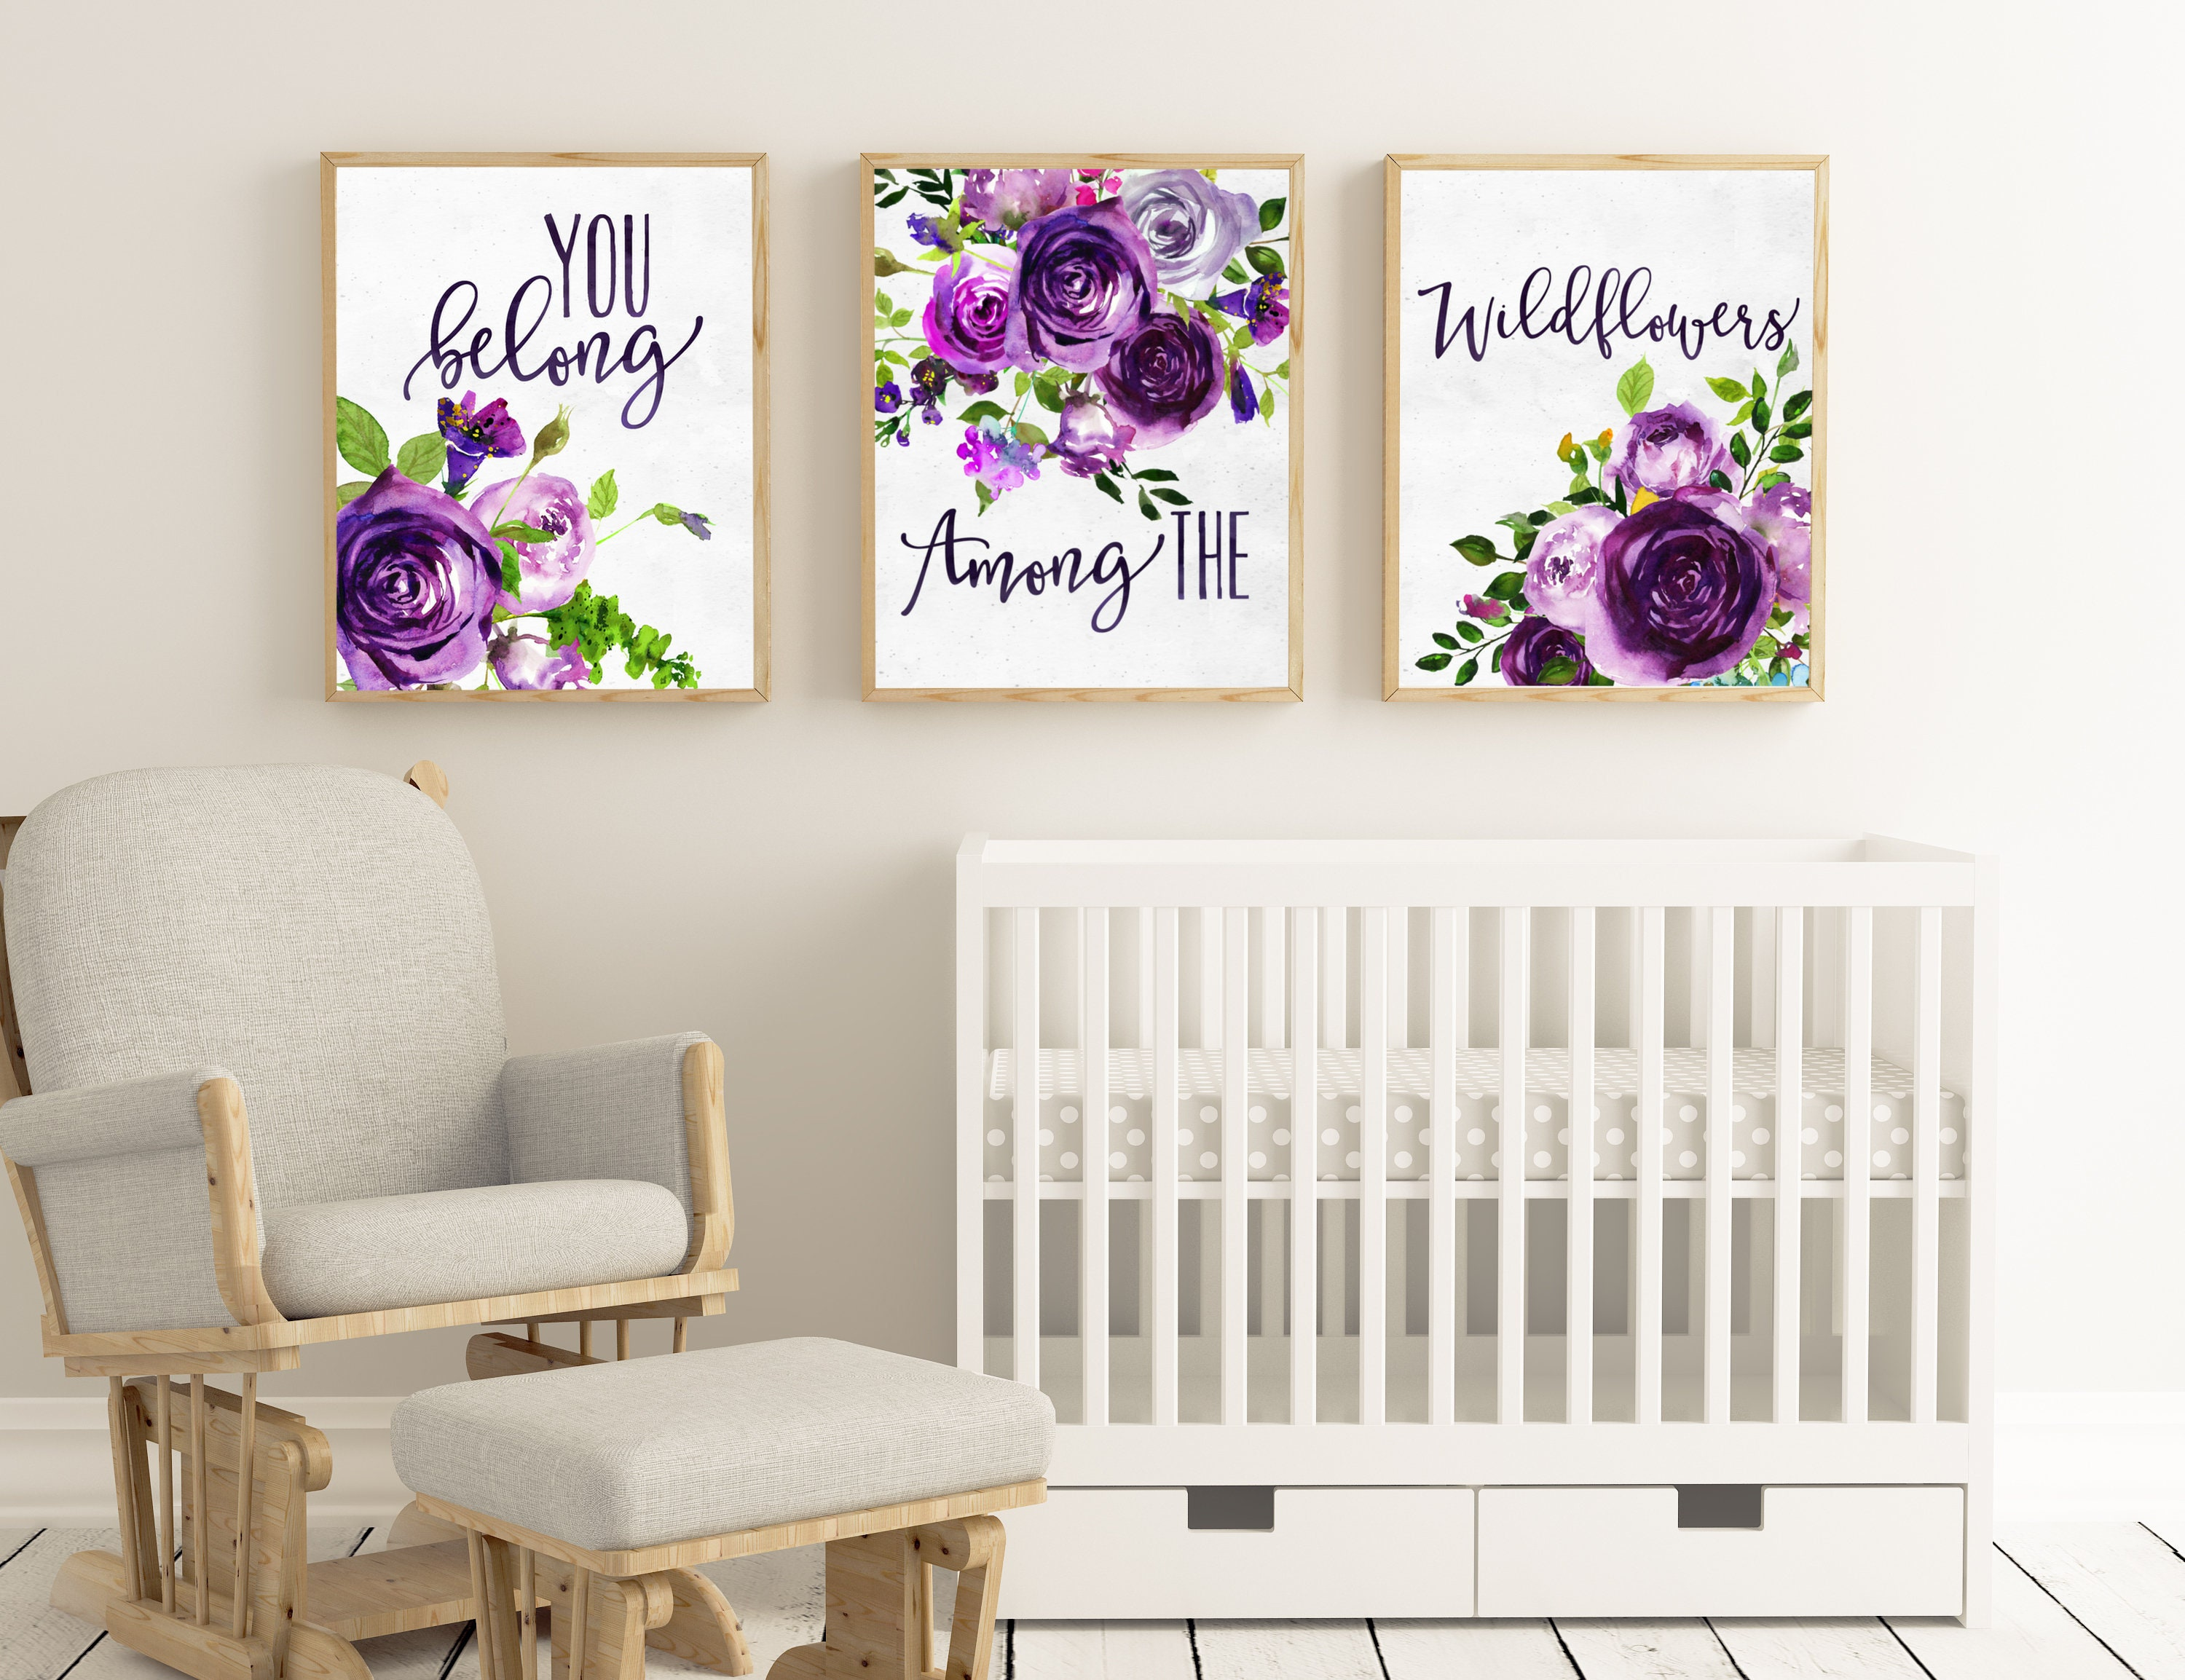 INSTANT DOWNLOAD - Set of 3 prints - You belong among the Wildflowers -  wall art - kids room decor - girls room - purple green floral